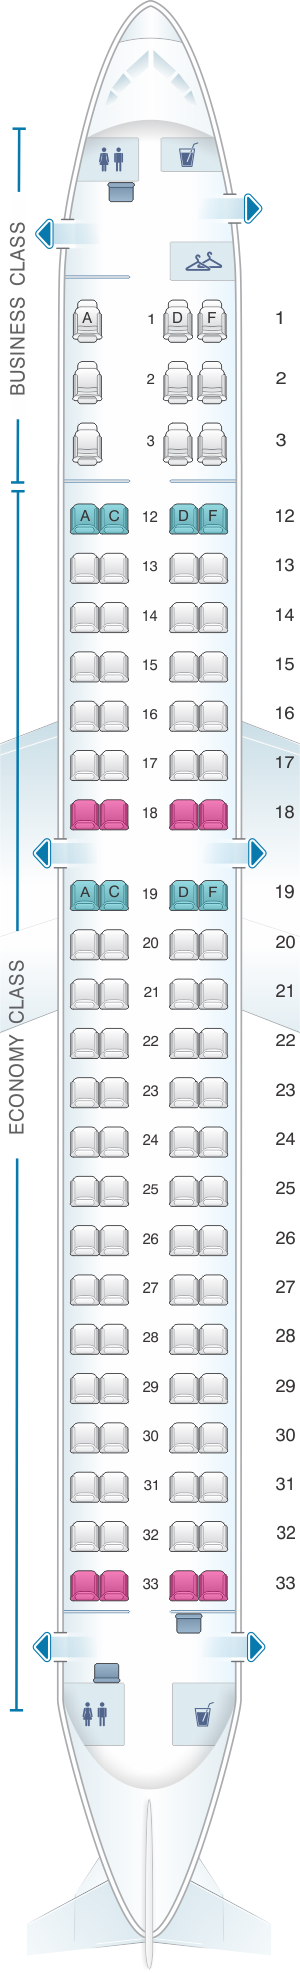 Seat map for Air Canada Embraer E190